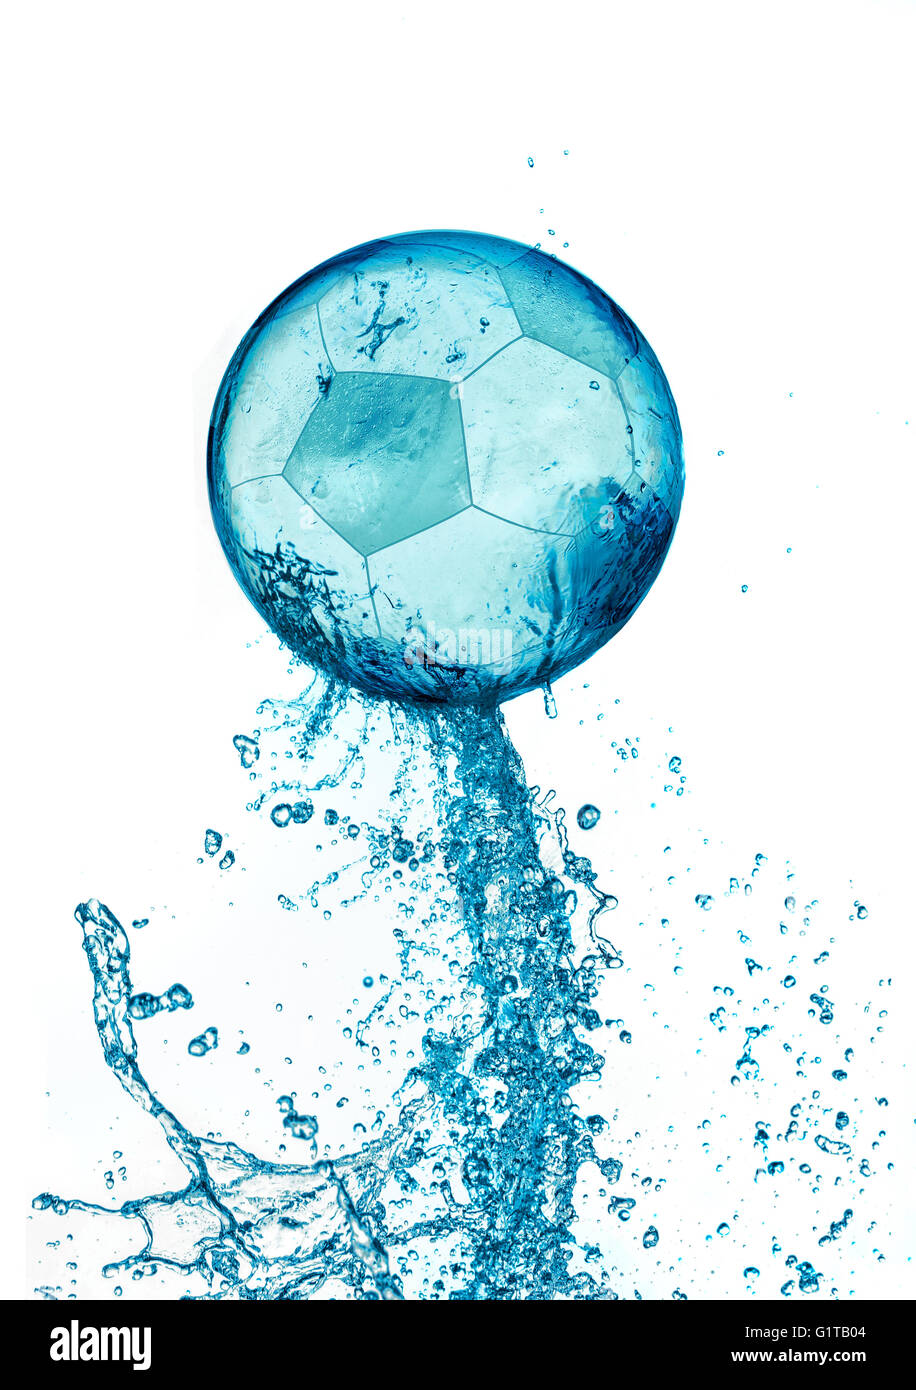 Abstract Water Soccer Ball Splash Isolated On White